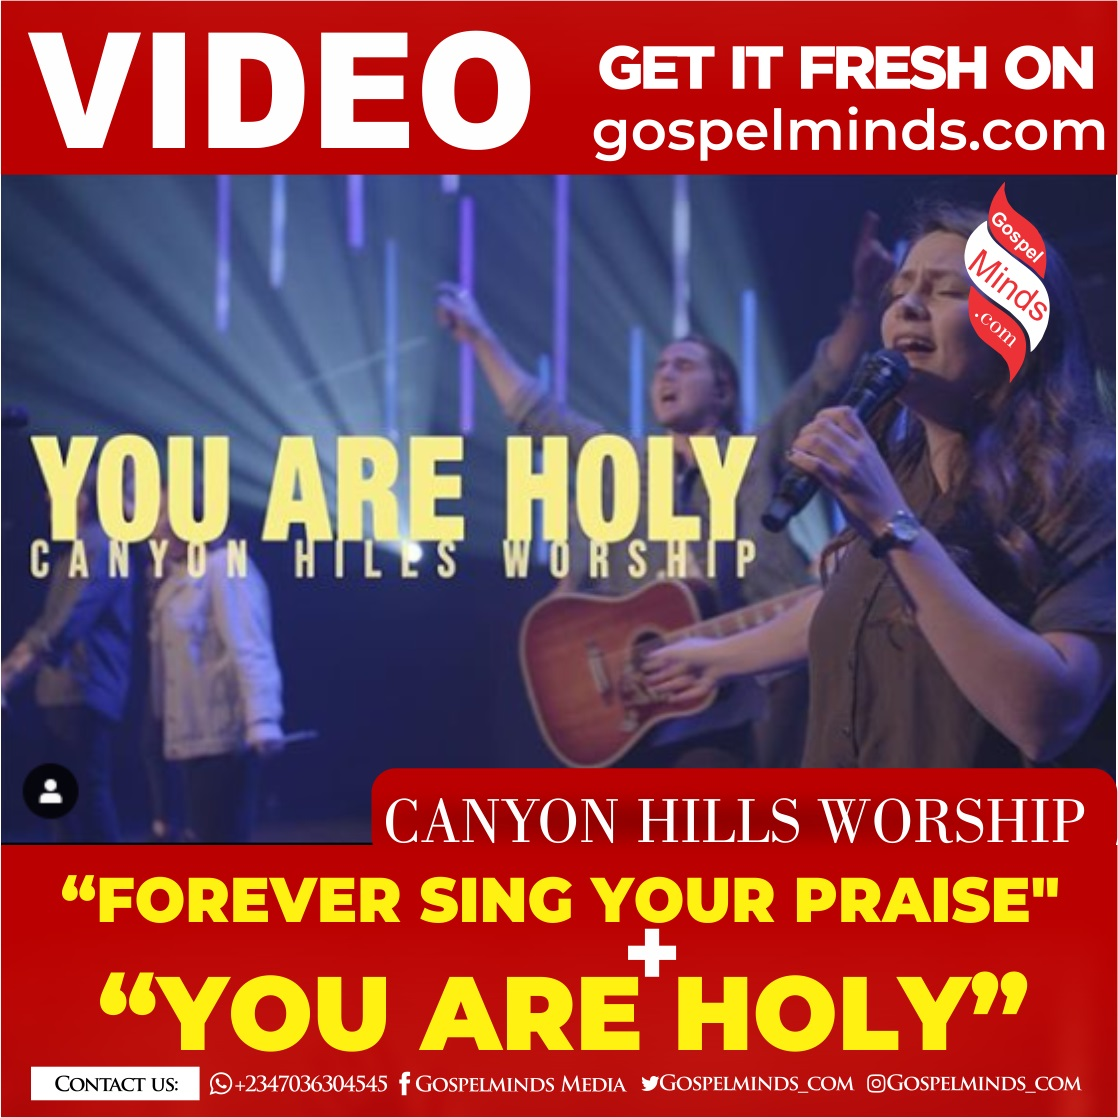 Canyon Hills Worship - Forever Sing Your Praise + You Are Holy